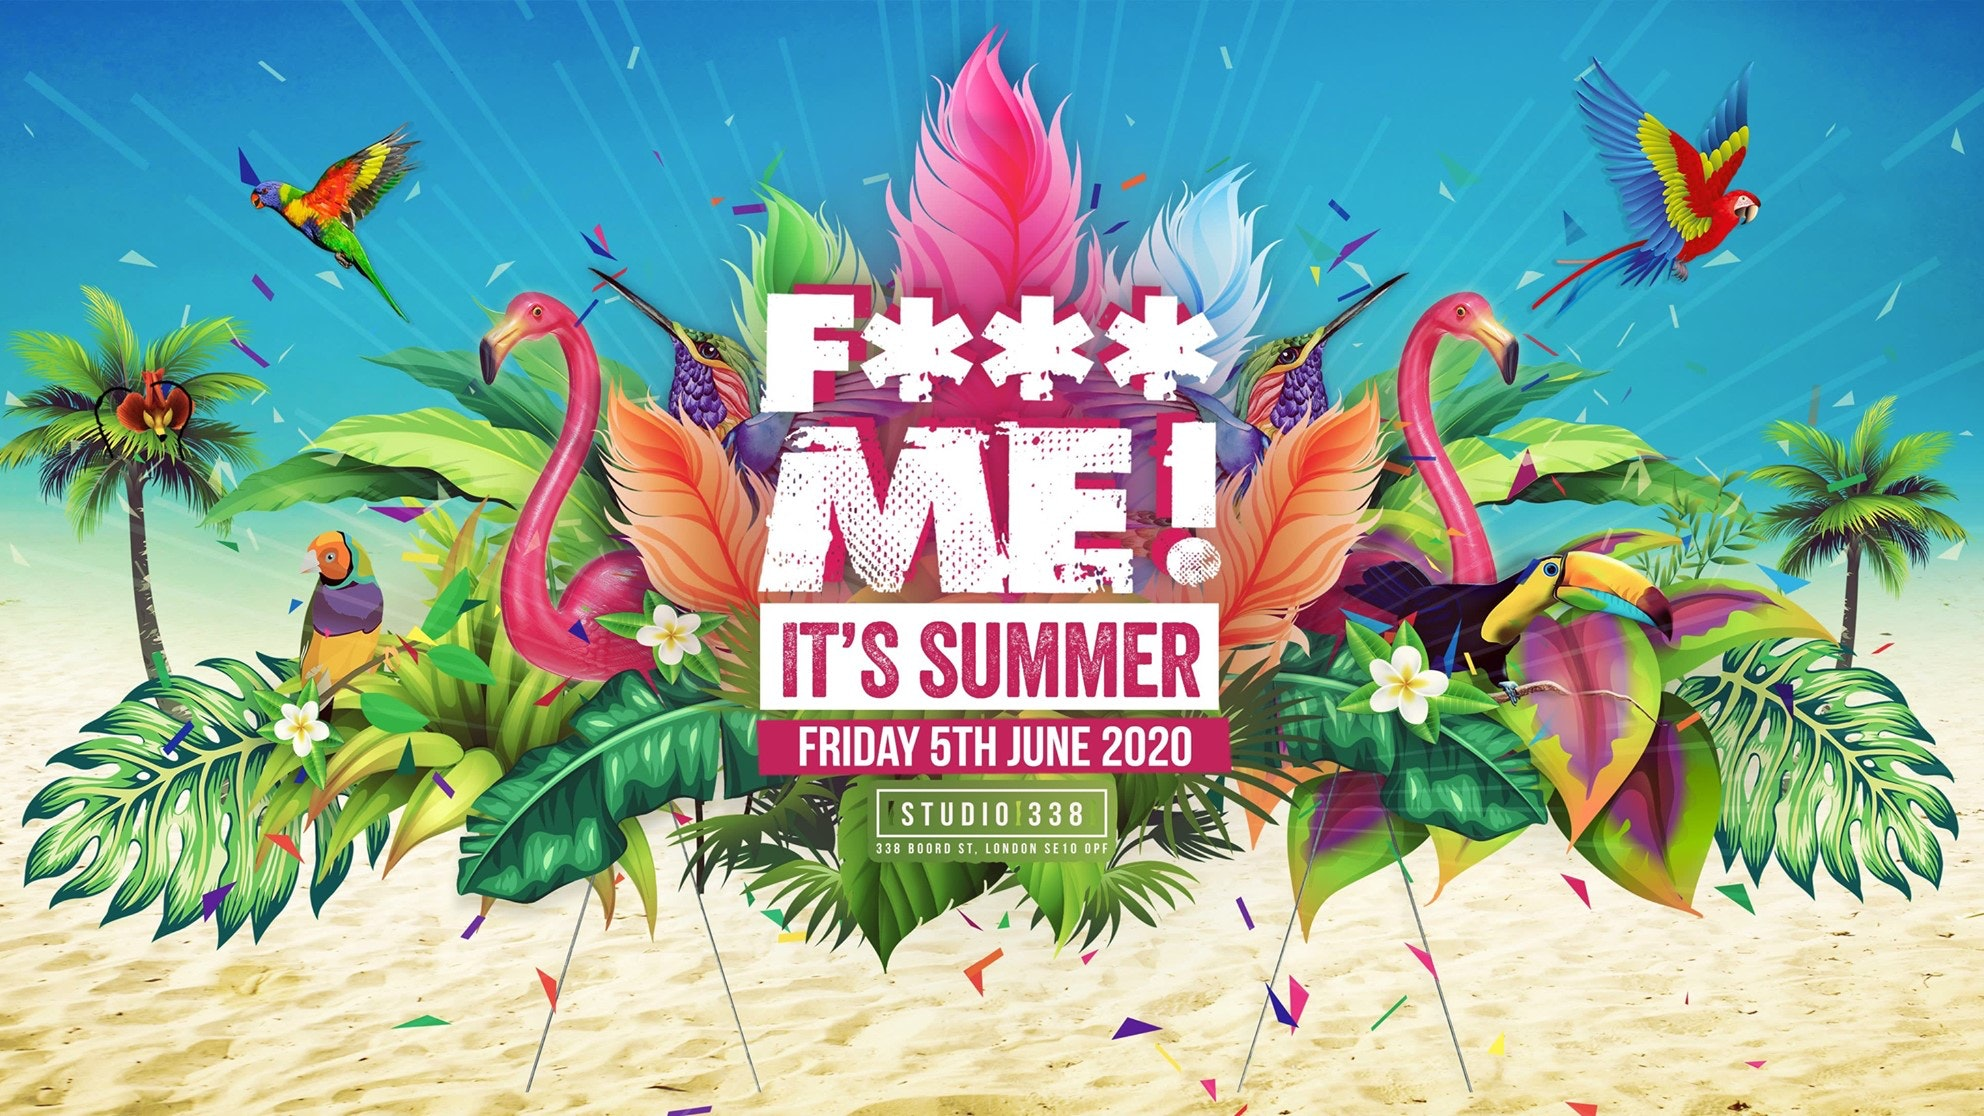 F-ME IT'S SUMMER 2020 /// FIRST 250 TICKETS ARE ONLY £3!